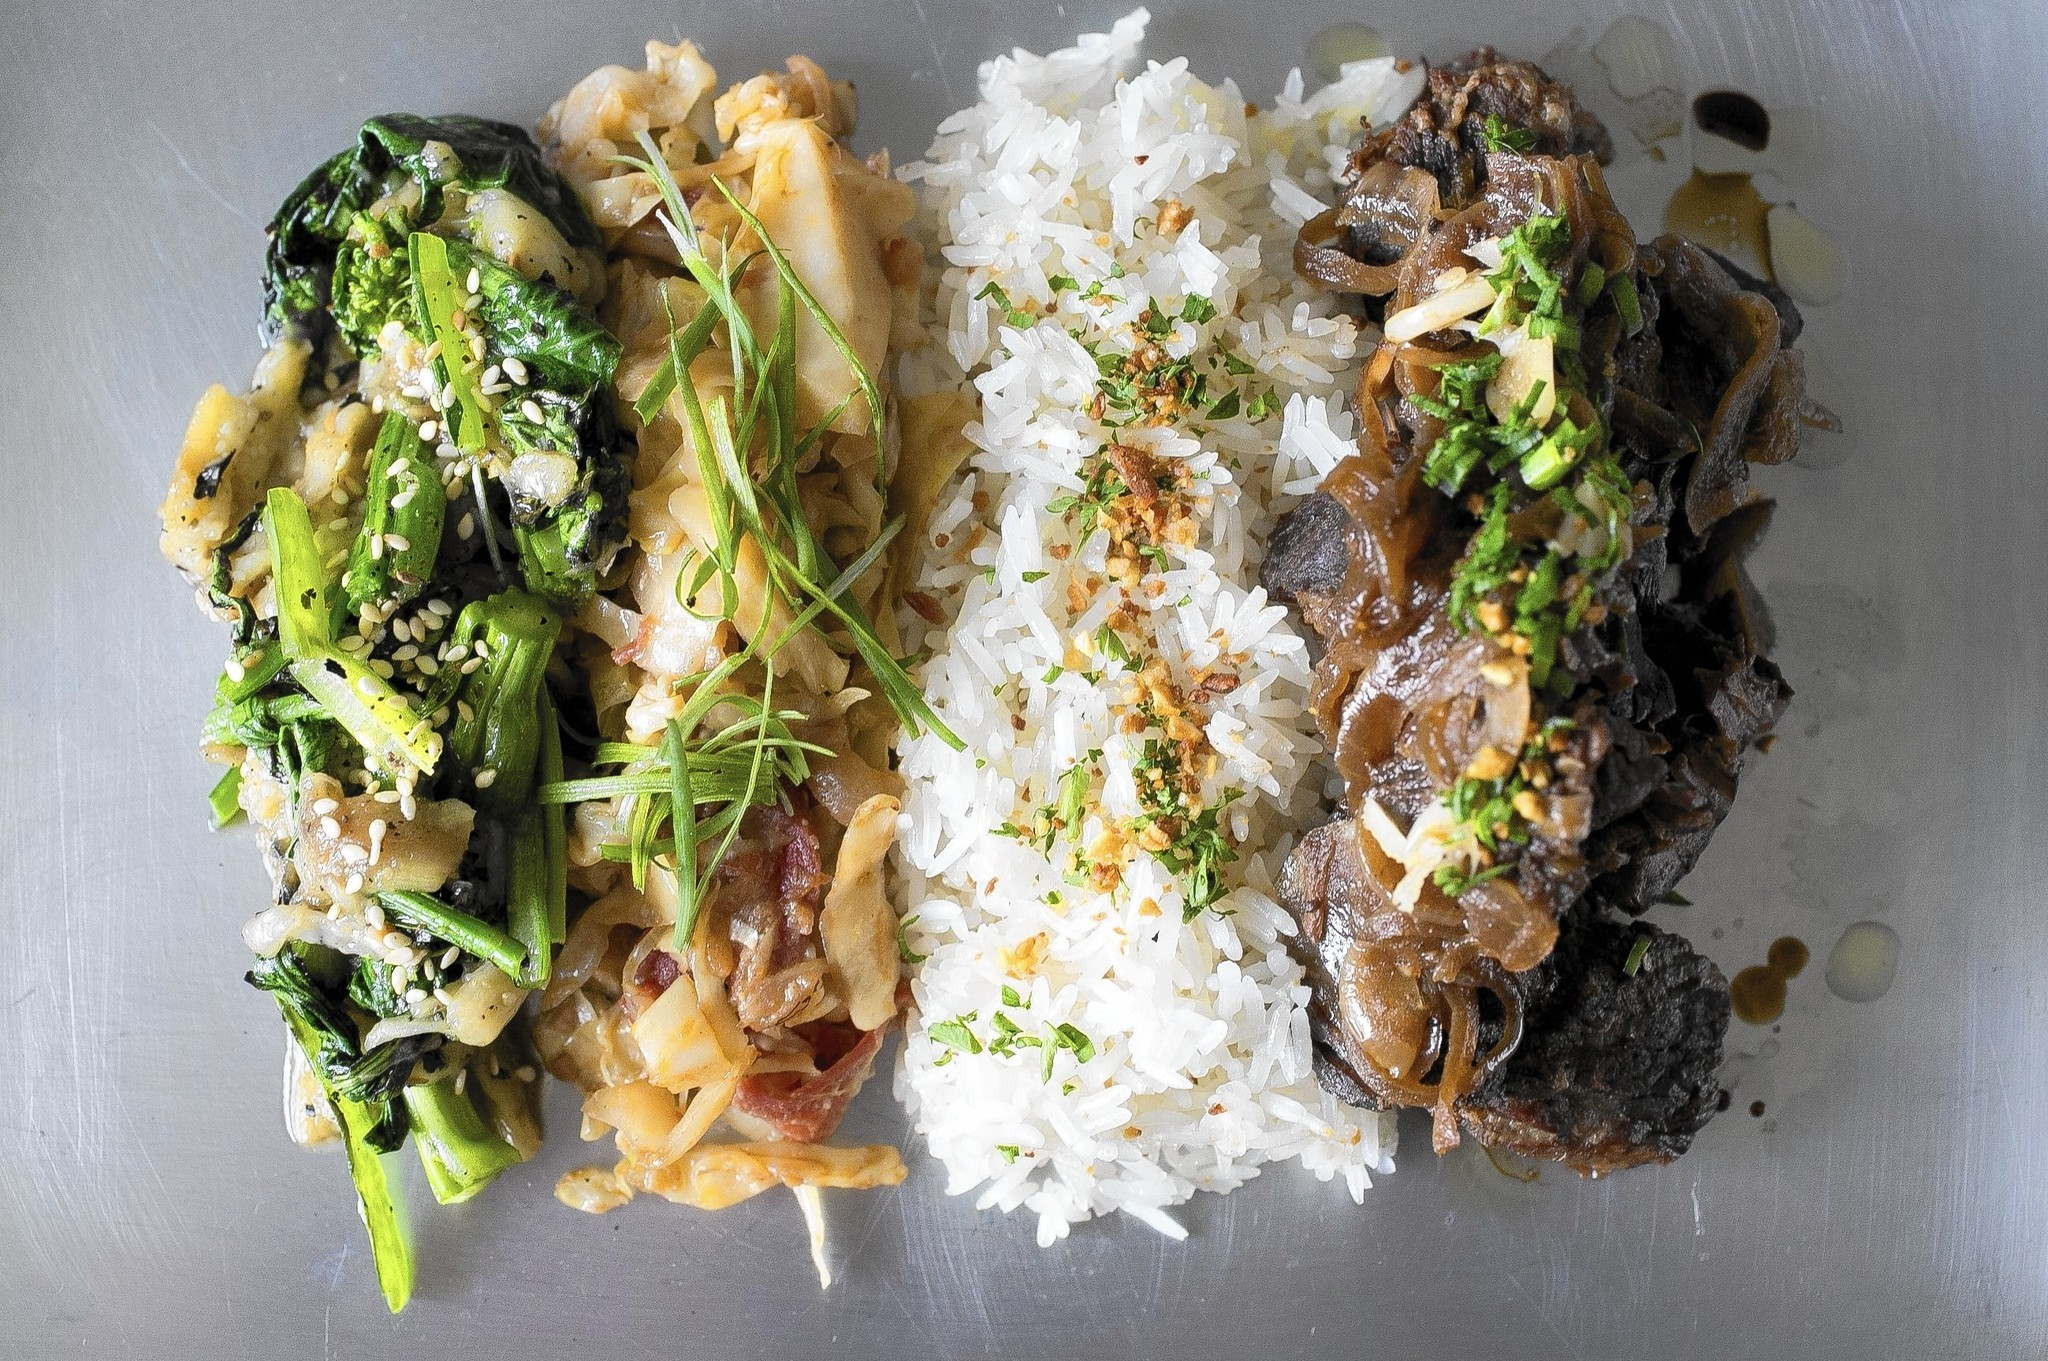 Big, punchy Filipino flavors coming out of Smalls' reconcepted kitchen